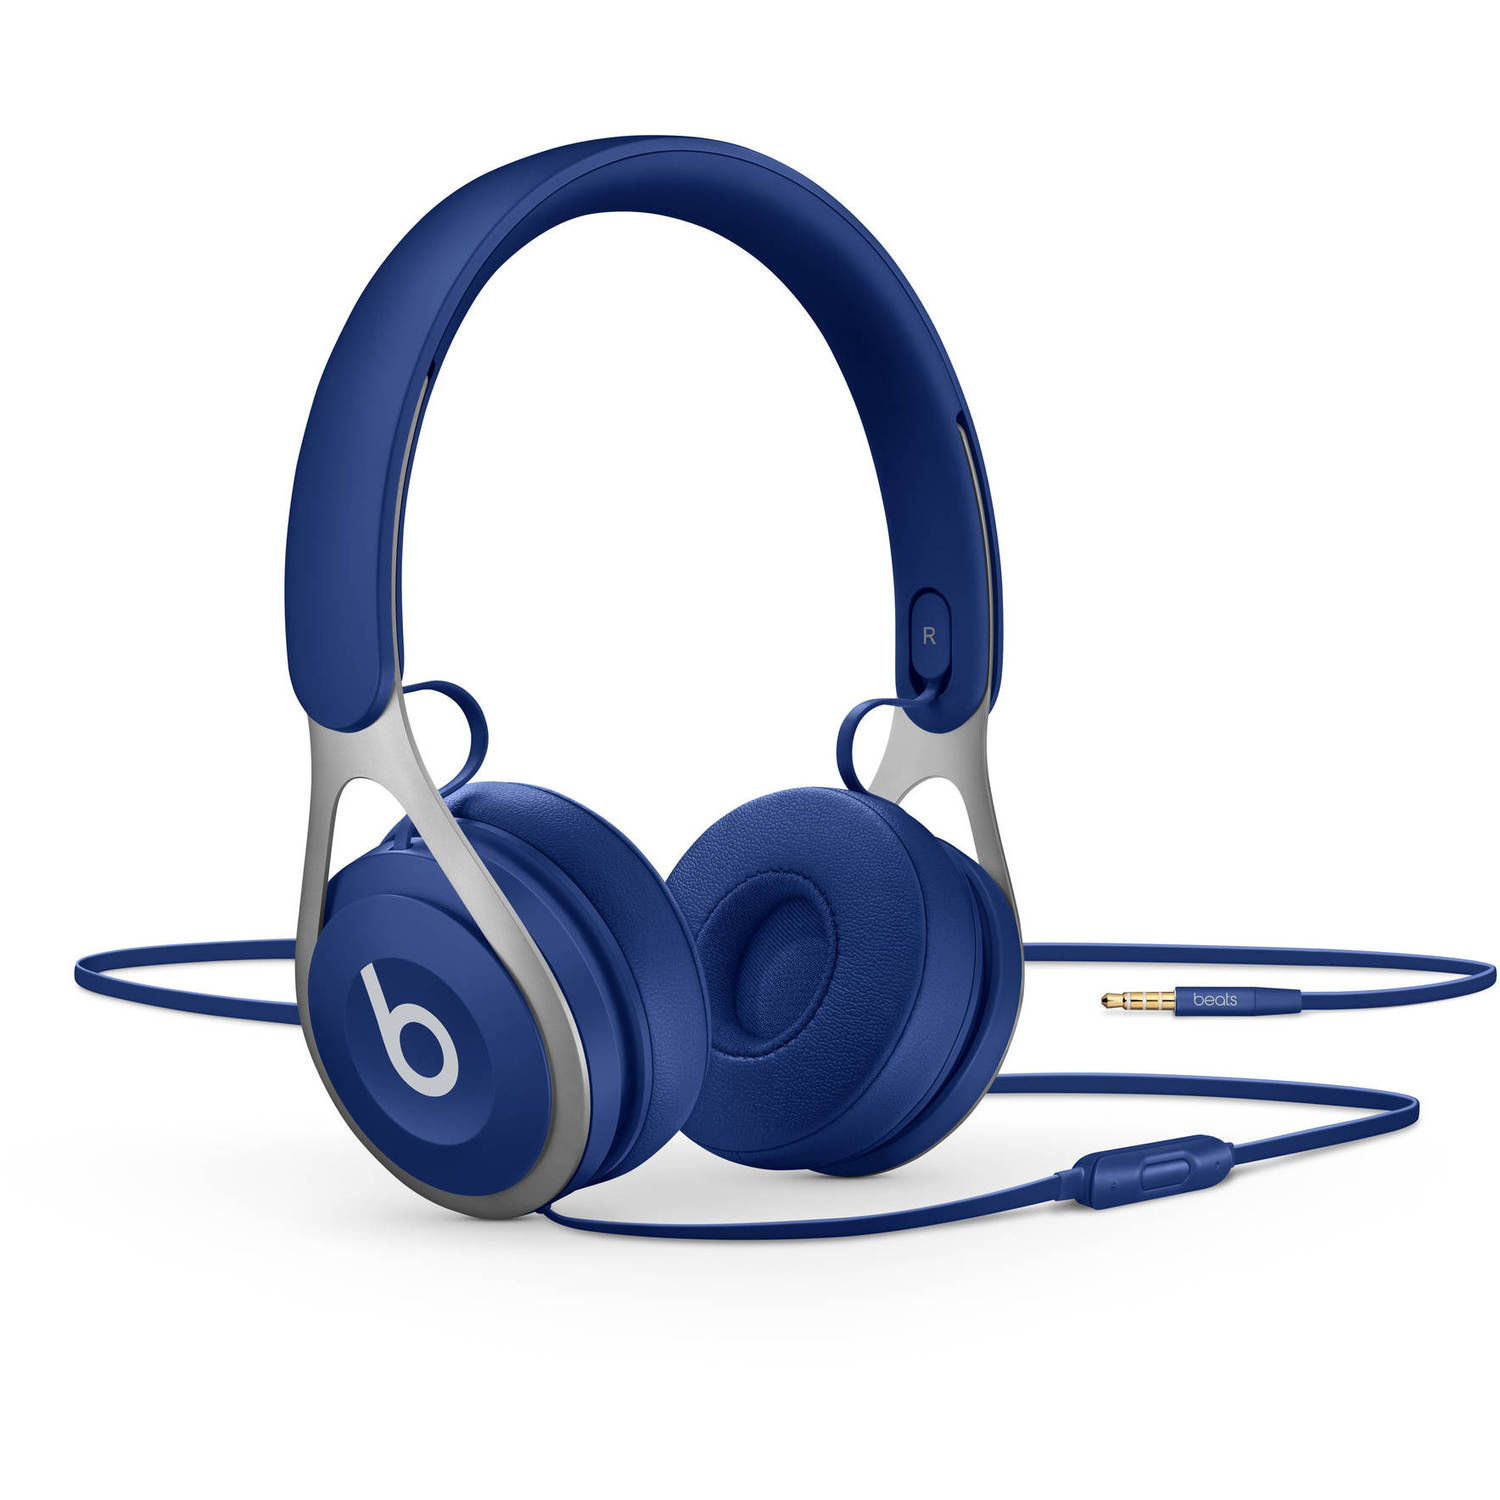 Beats ML9D2LL/A EP On-Ear Headphones, Refurbished